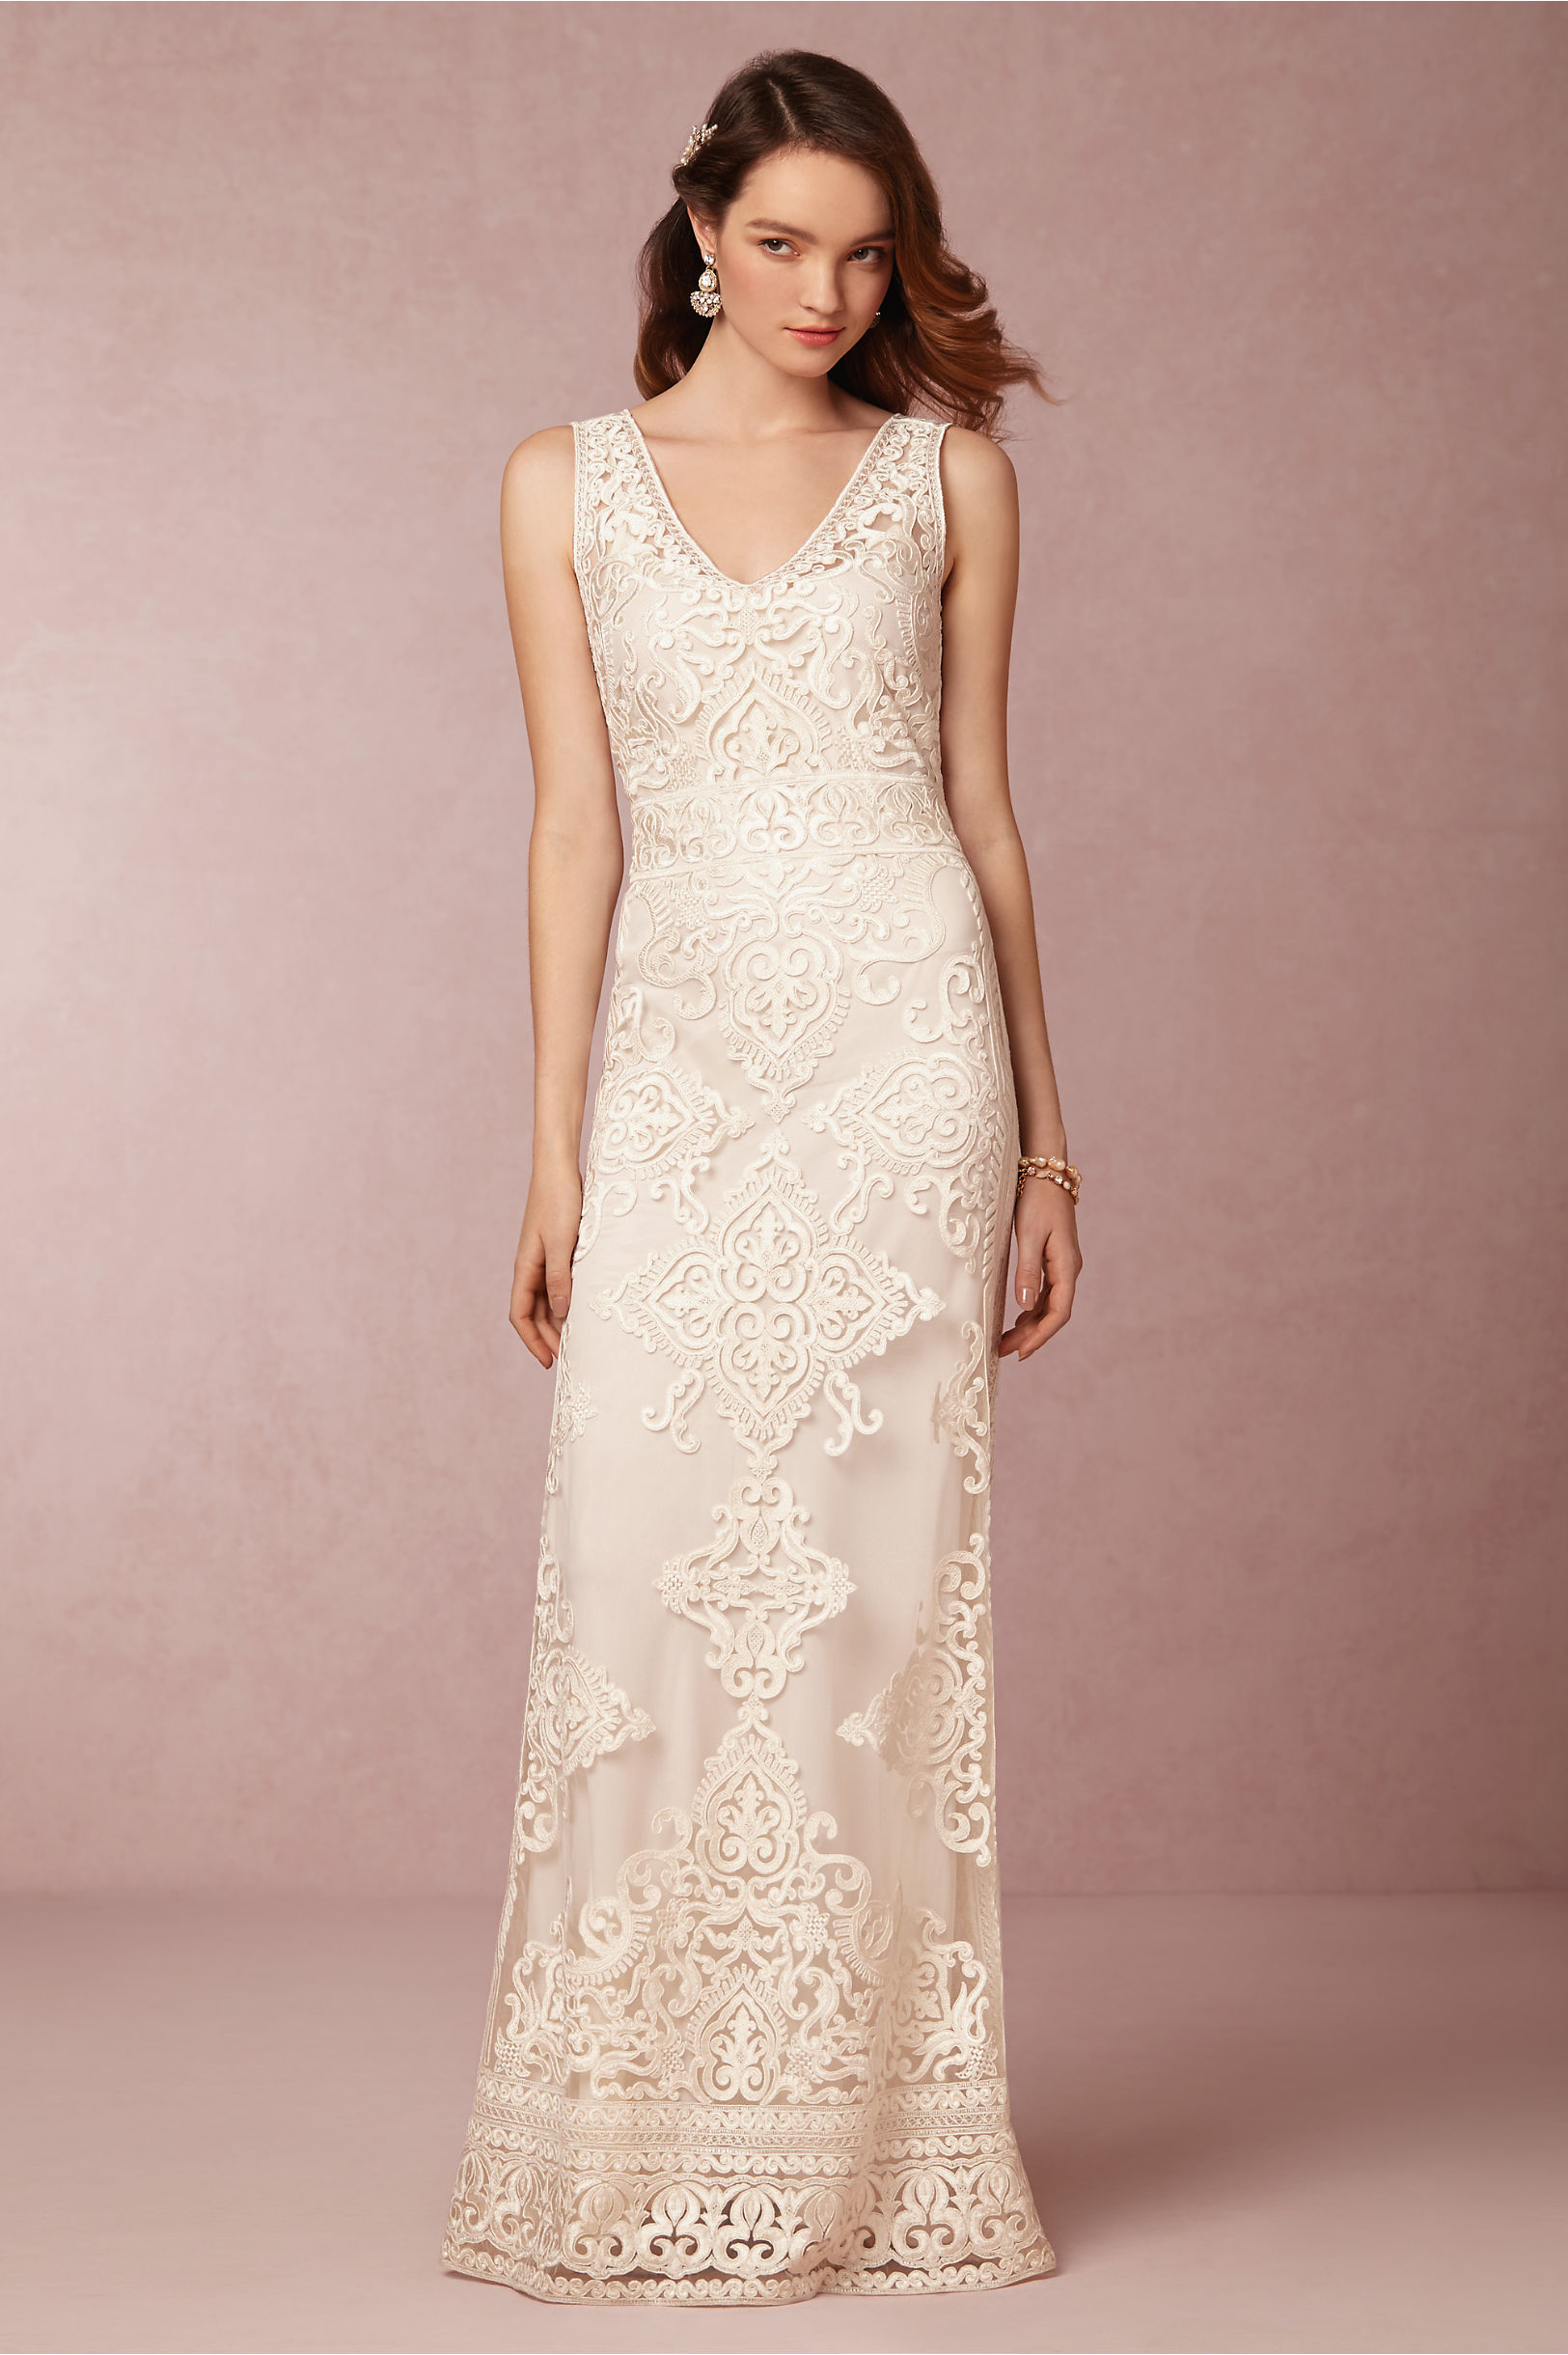 Alhambra Wedding Dress